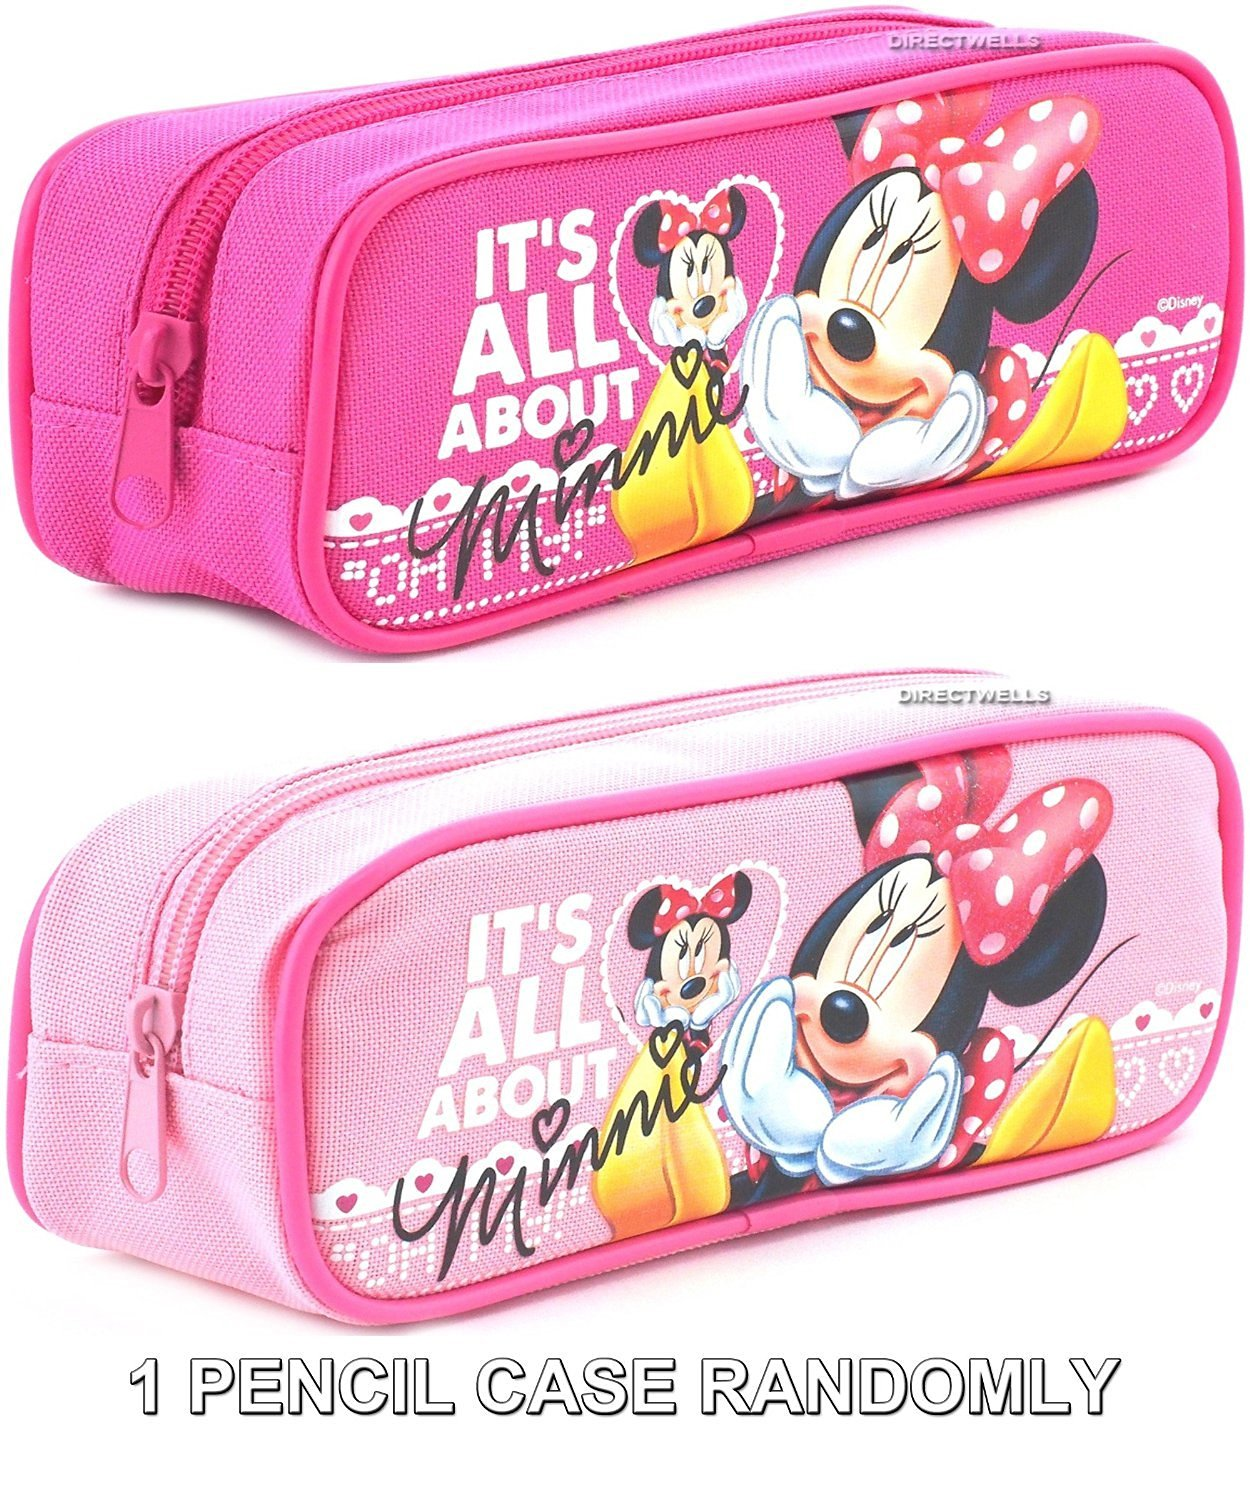 """Disney Minnie Mouse """" It's All About Minnie """" Pink or Hot Pink Pencil Case Randomly (1 PENCIL CASE)"""